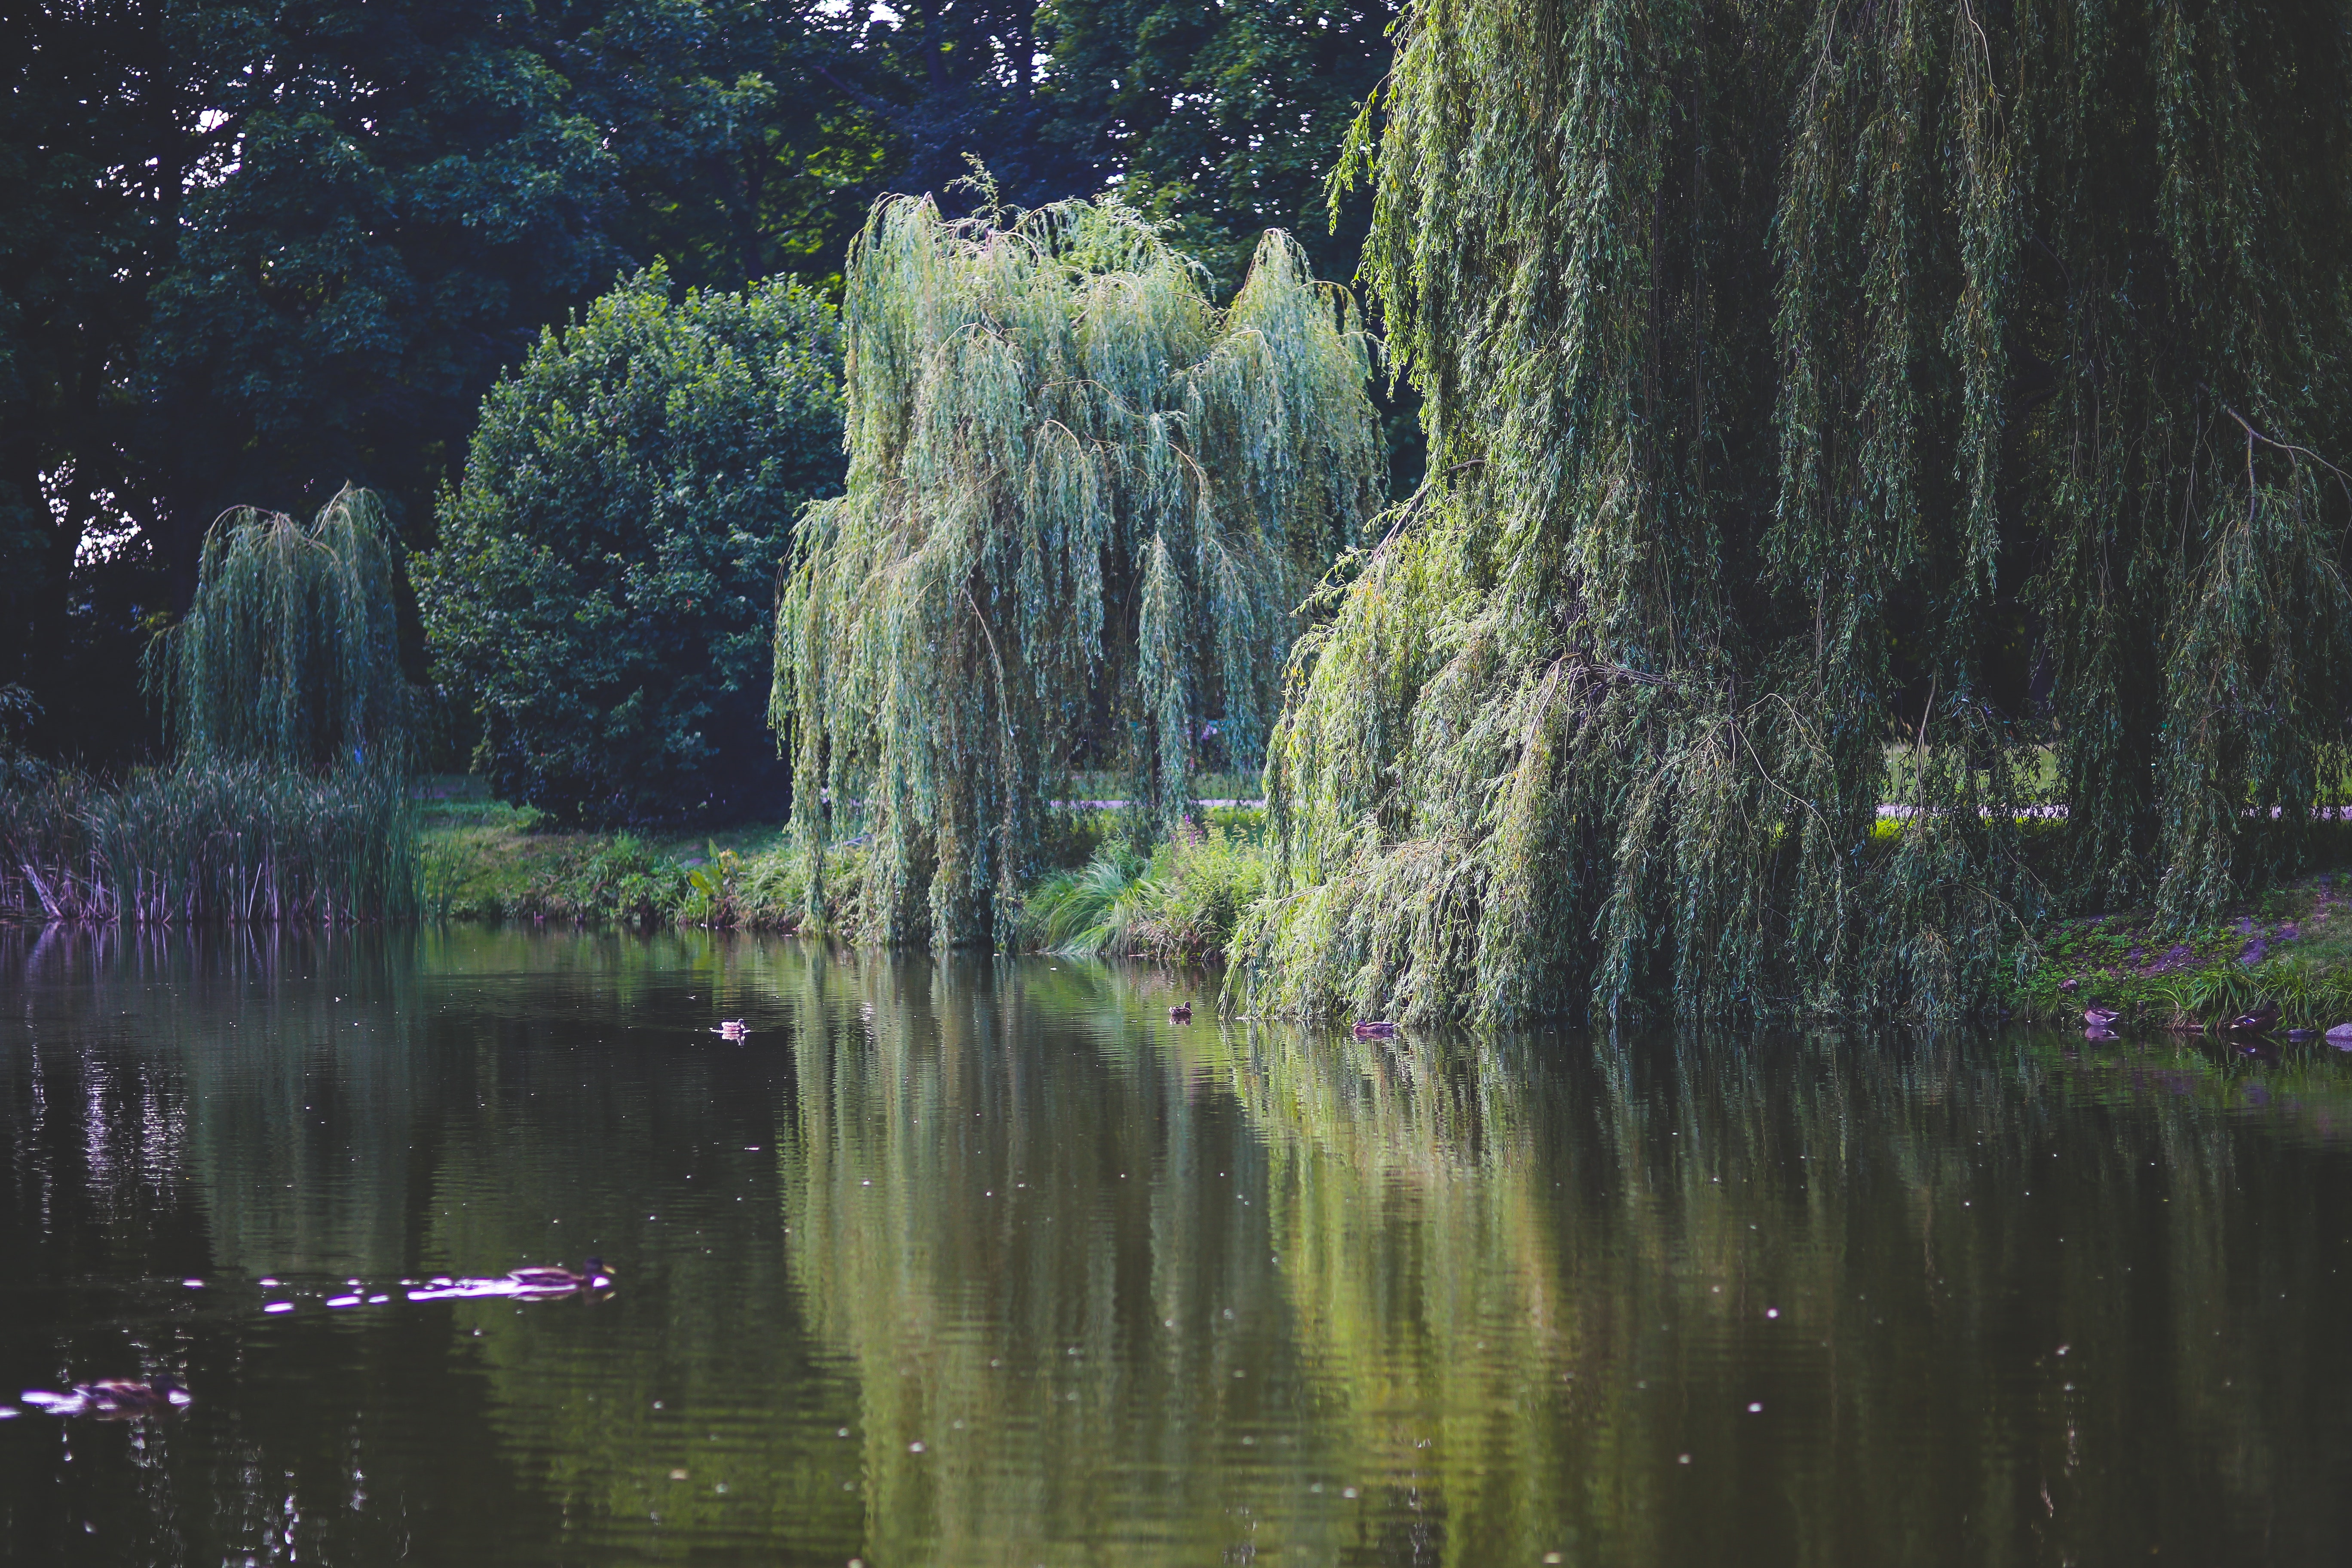 Willow that grow along the river photo